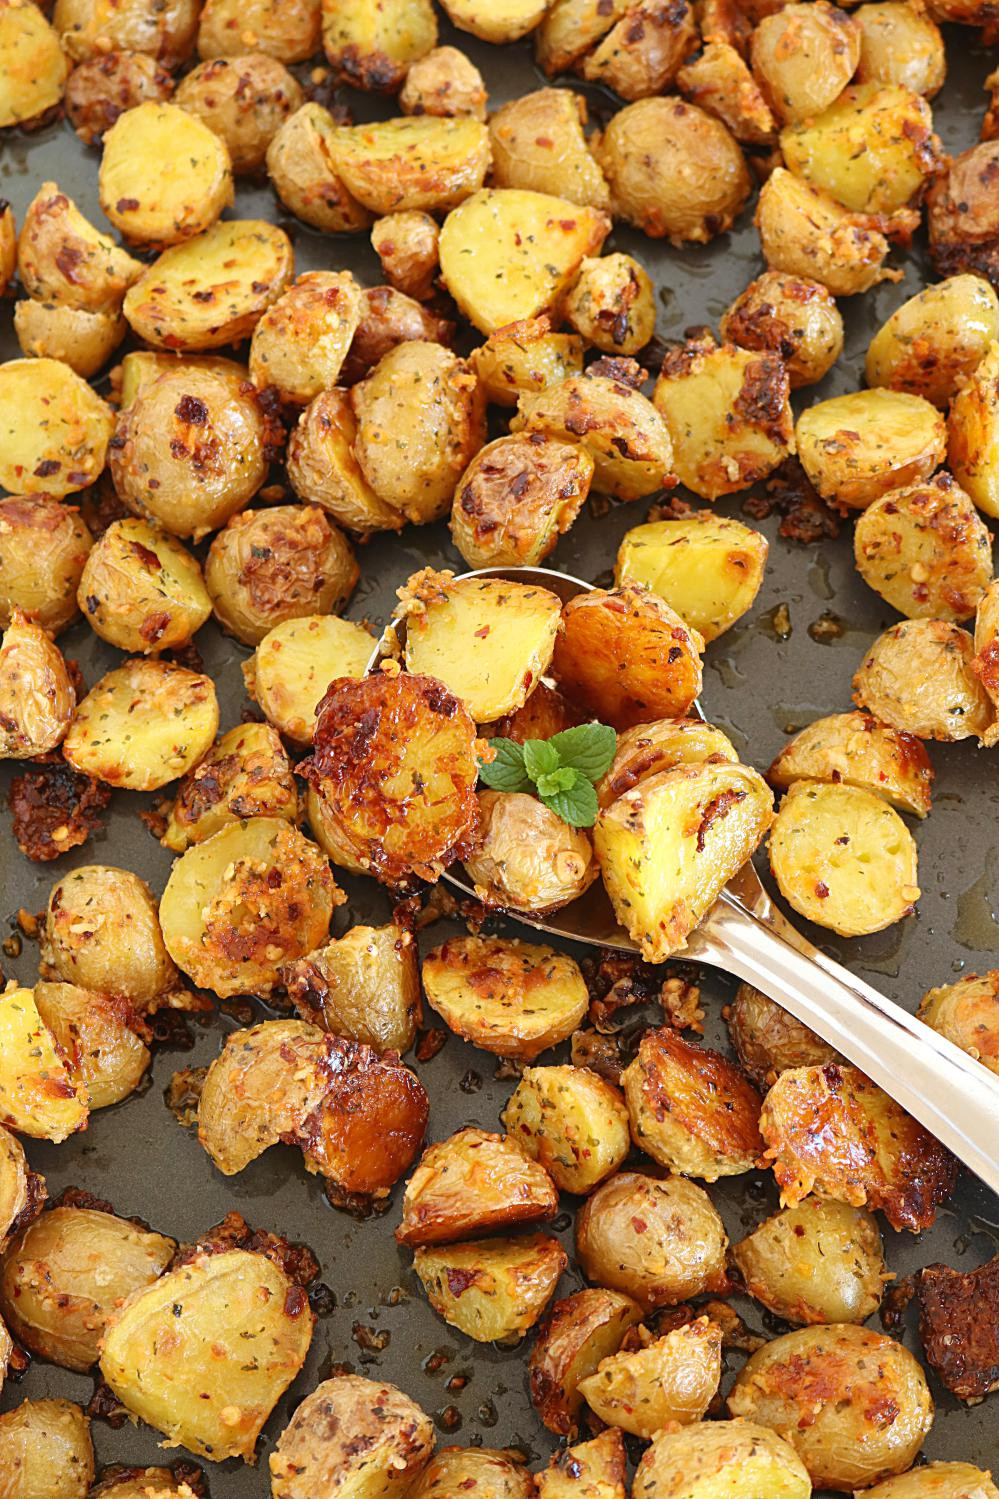 Healthy Oven Roasted Potatoes  Oven Roasted Potatoes Crispy Oven Roasted Potatoes how